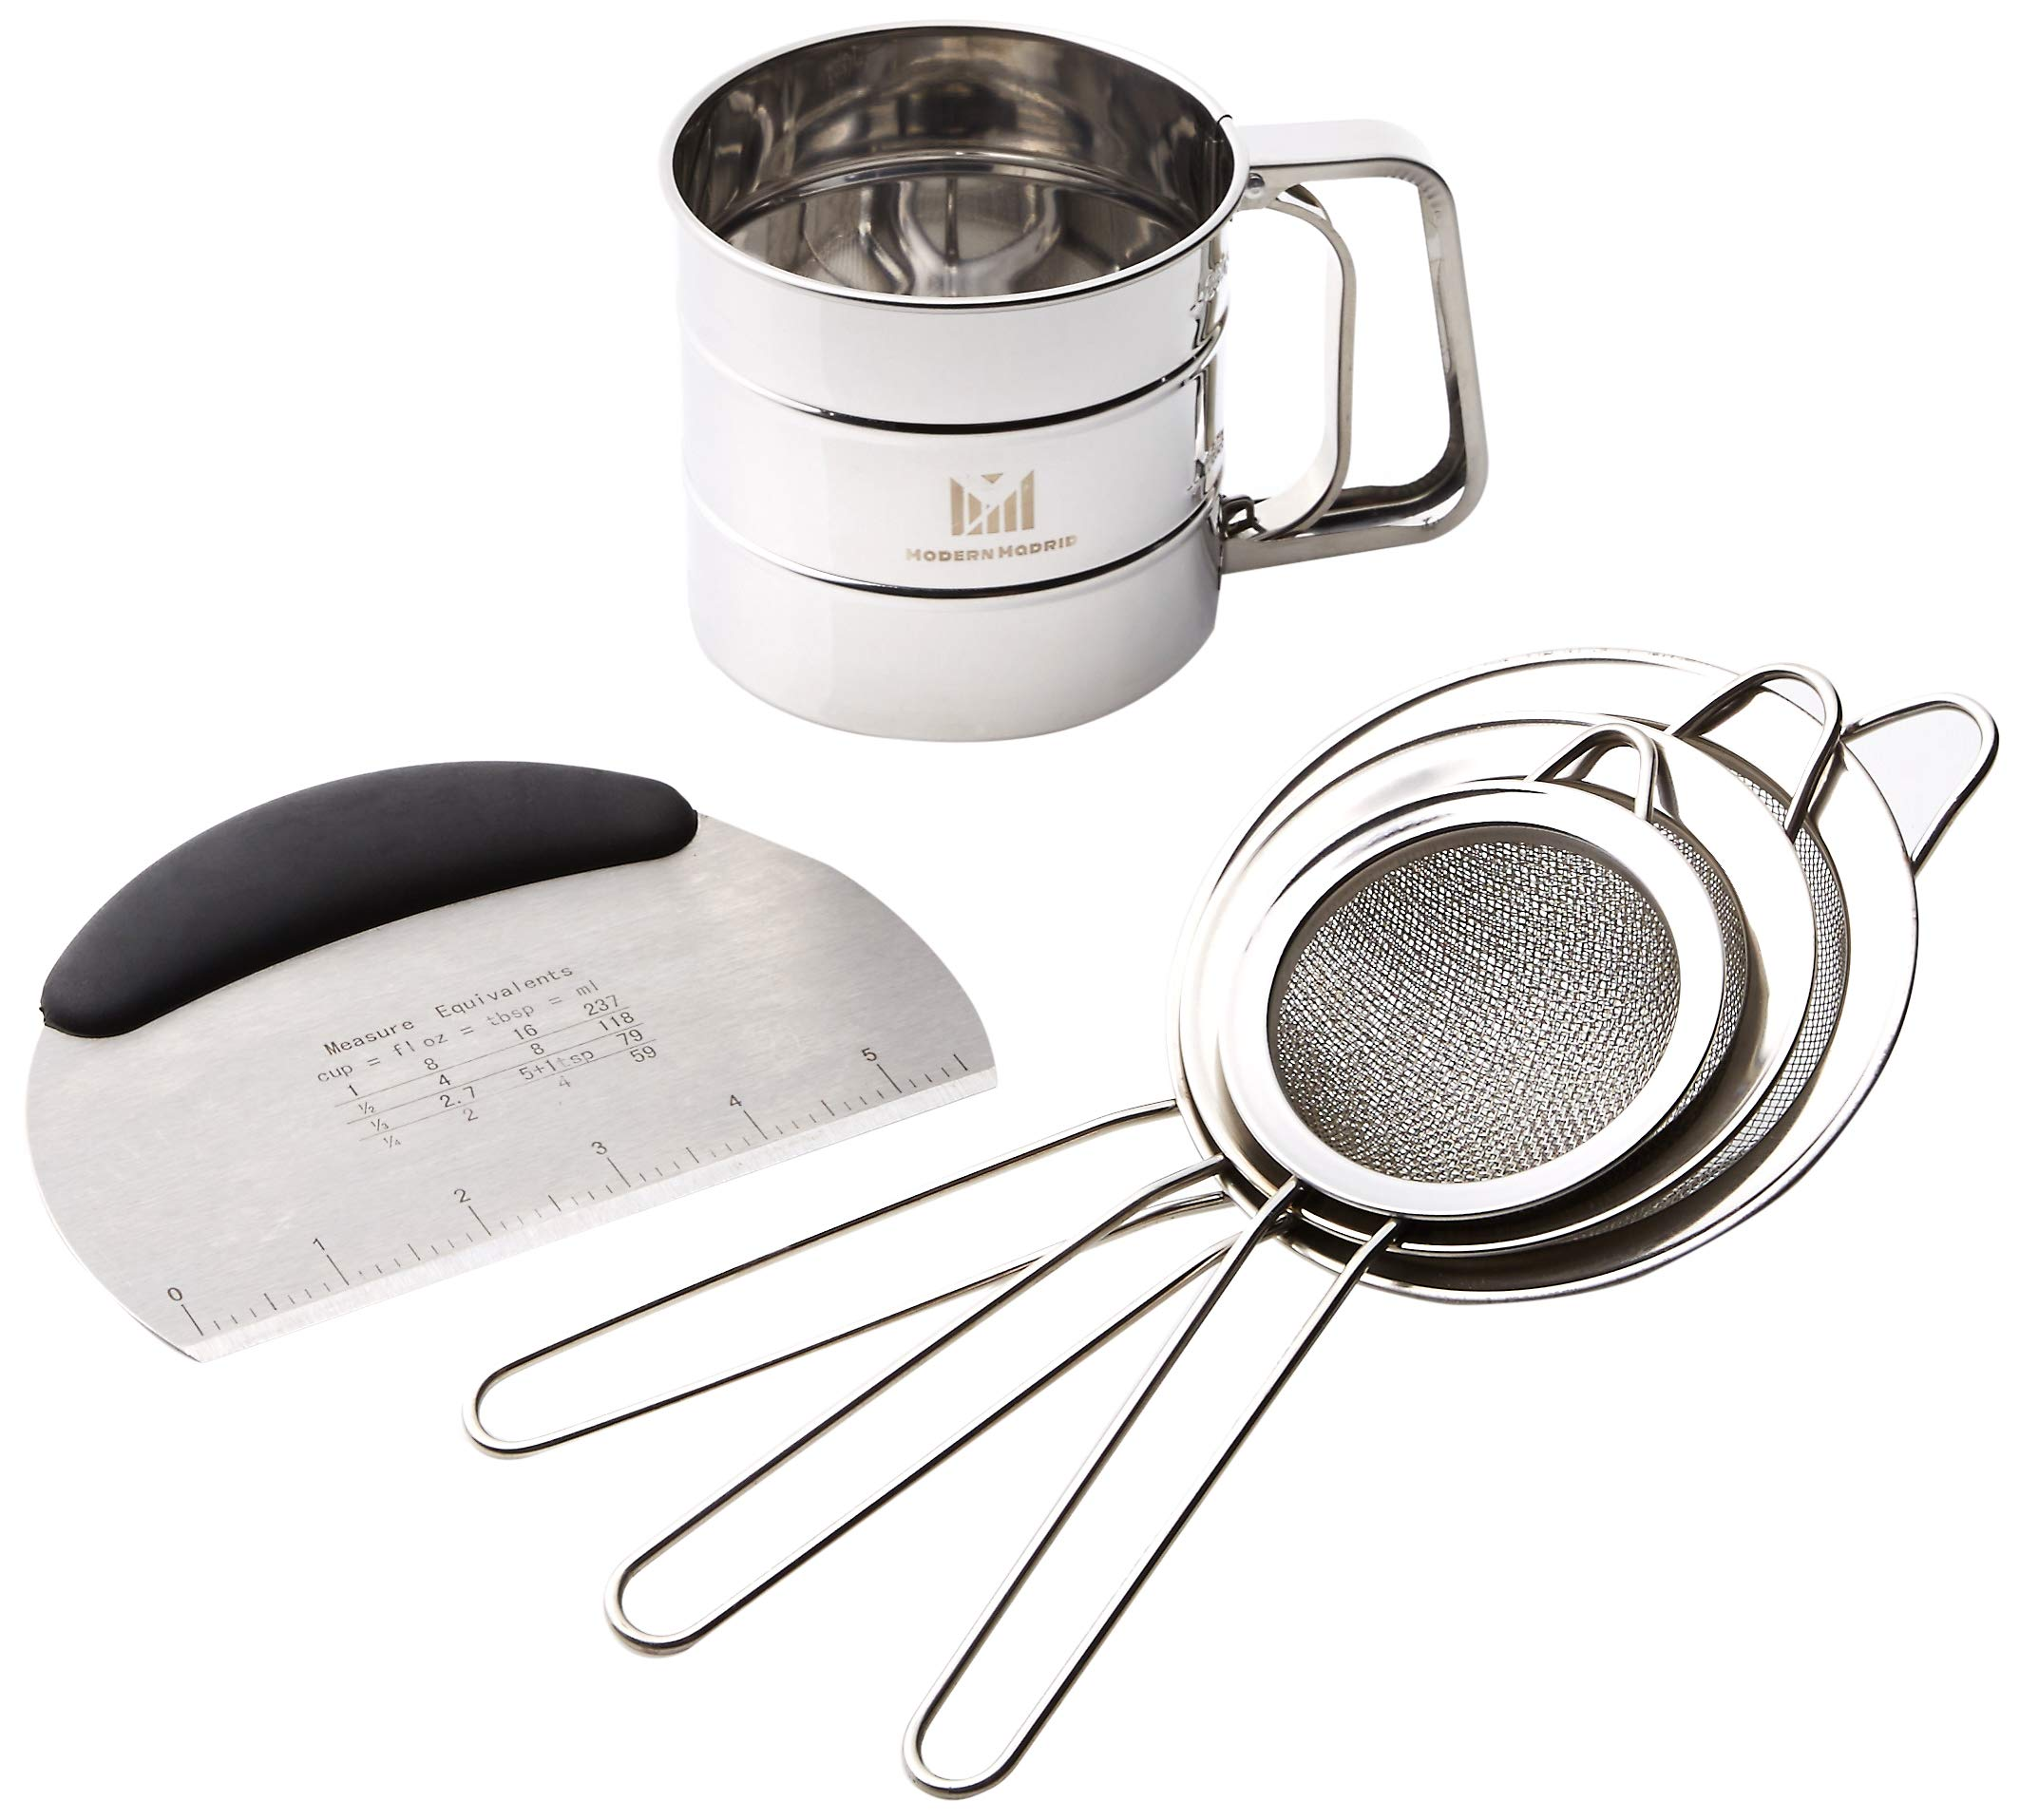 Modern Madrid: Sifter Sieve Set with Dough Scraper. 5 Pieces by Modern Madrid